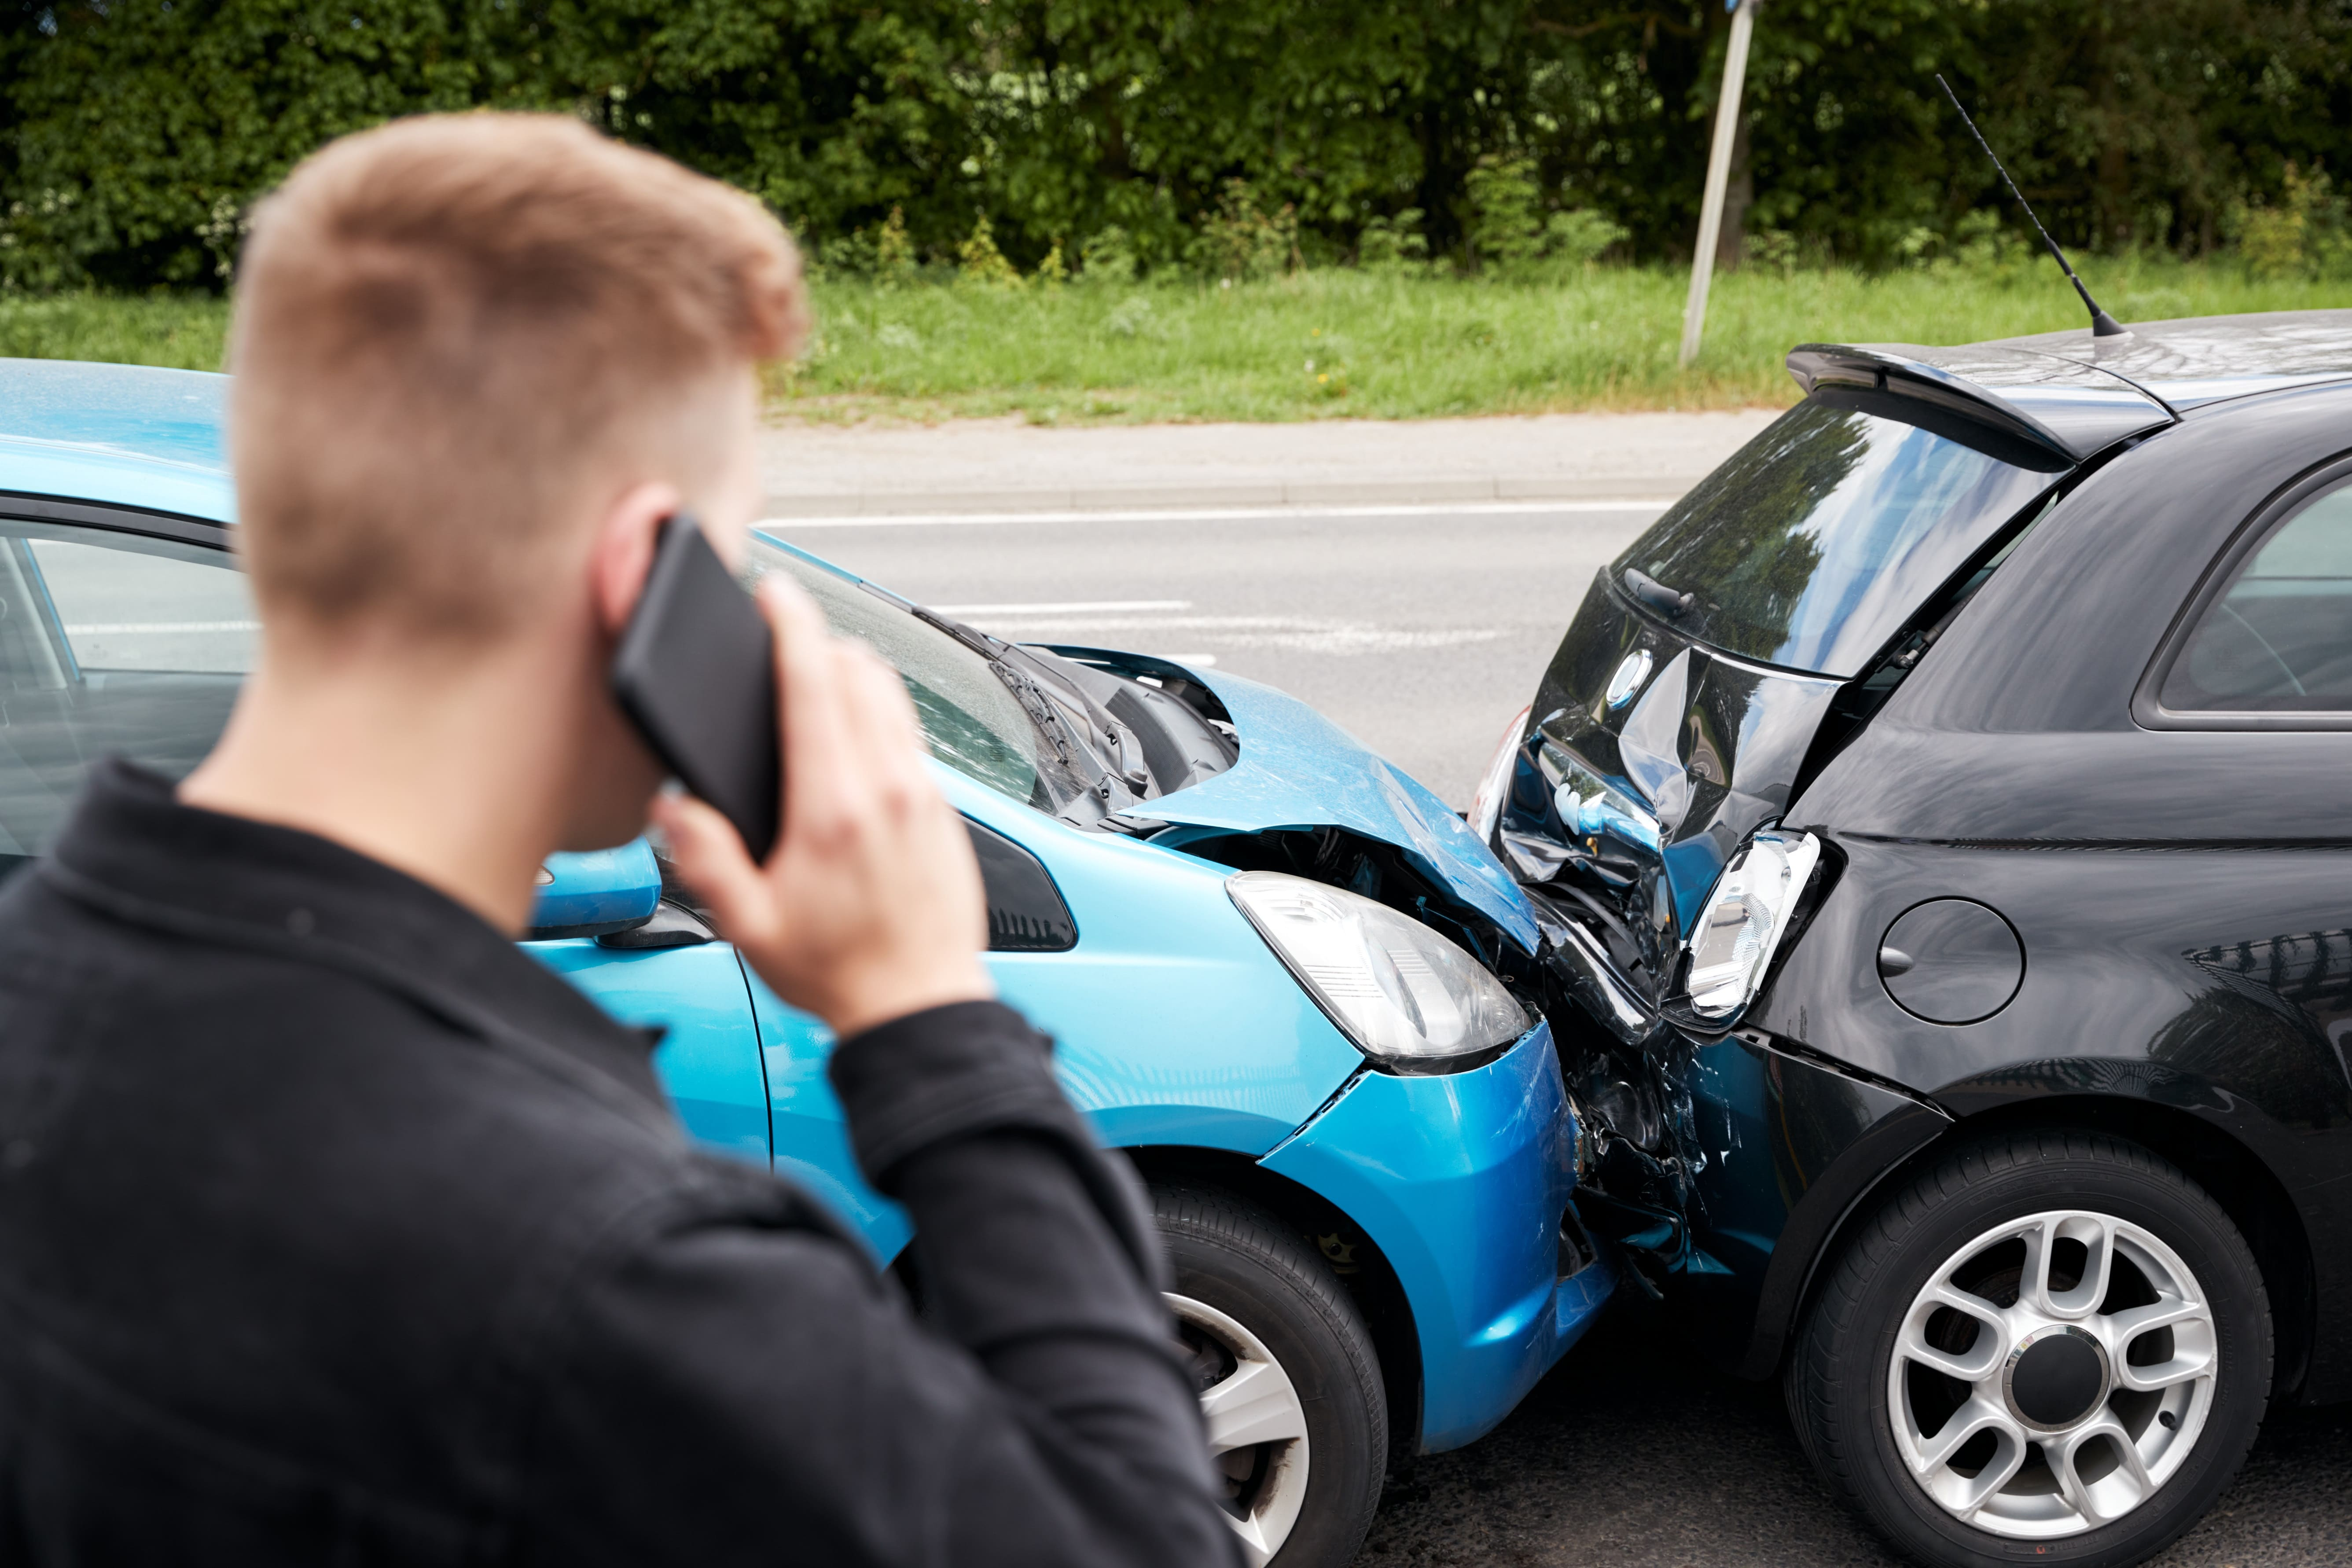 How Do I Get My Car Fixed After a Car Accident?